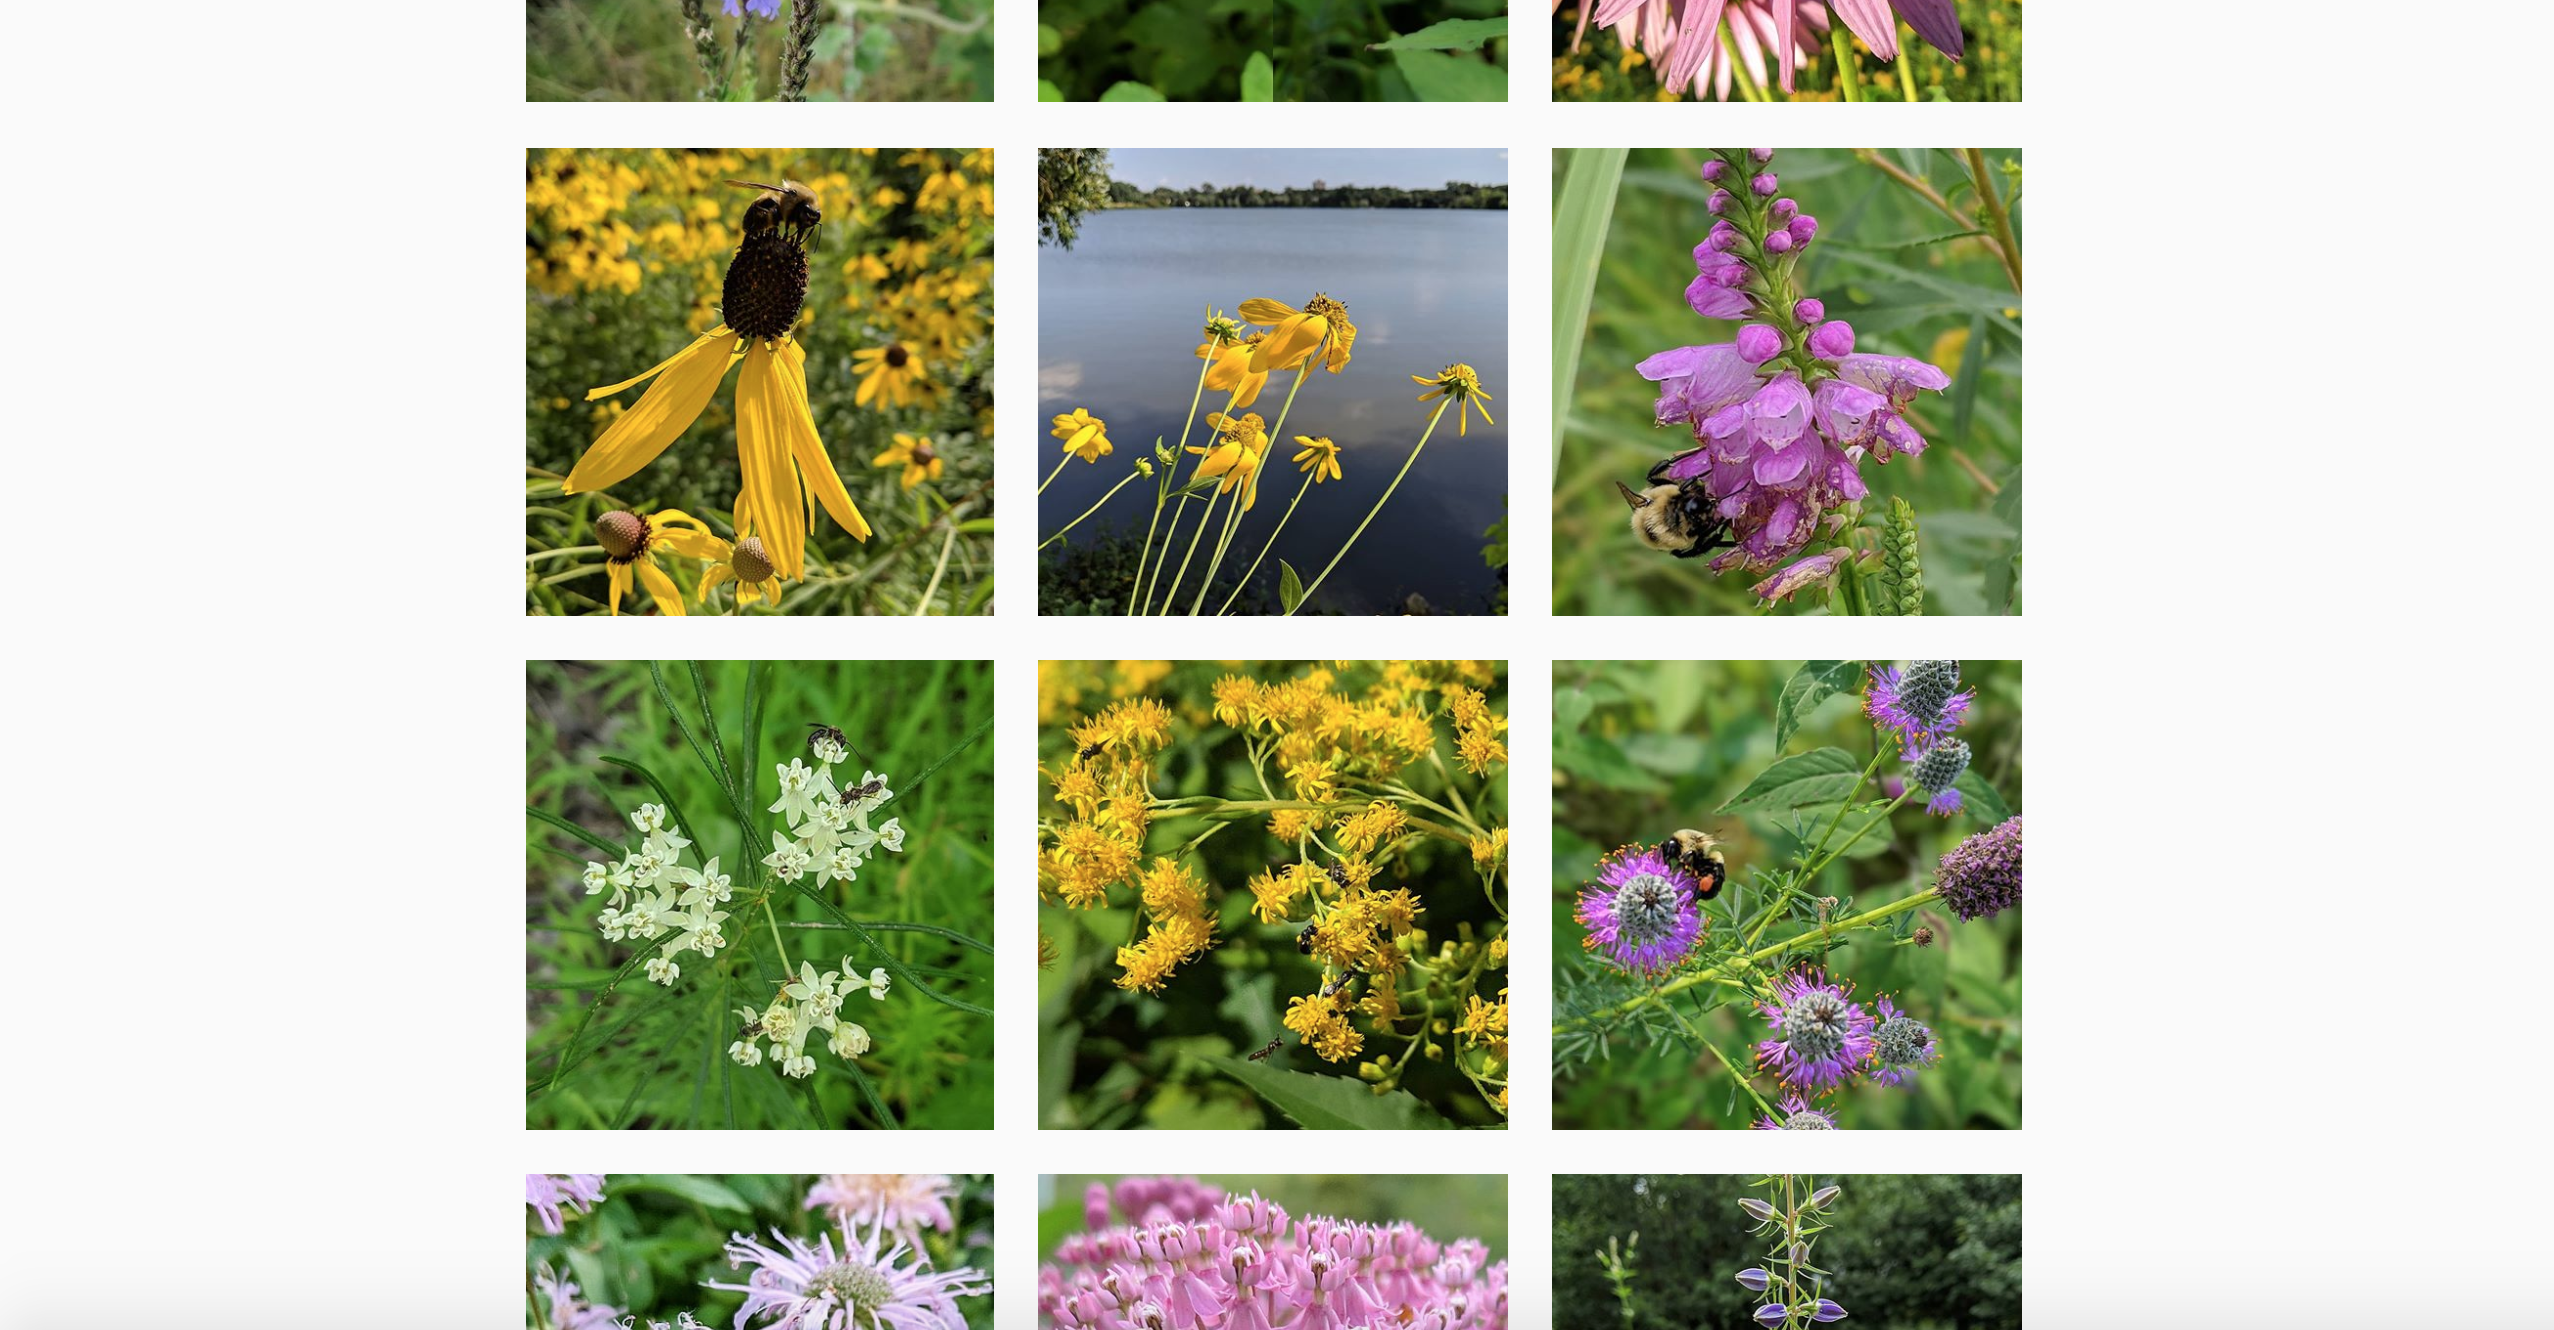 Screengrab of the Big River Big Woods Instagram feed during the summer, with photos of blooming flowers.